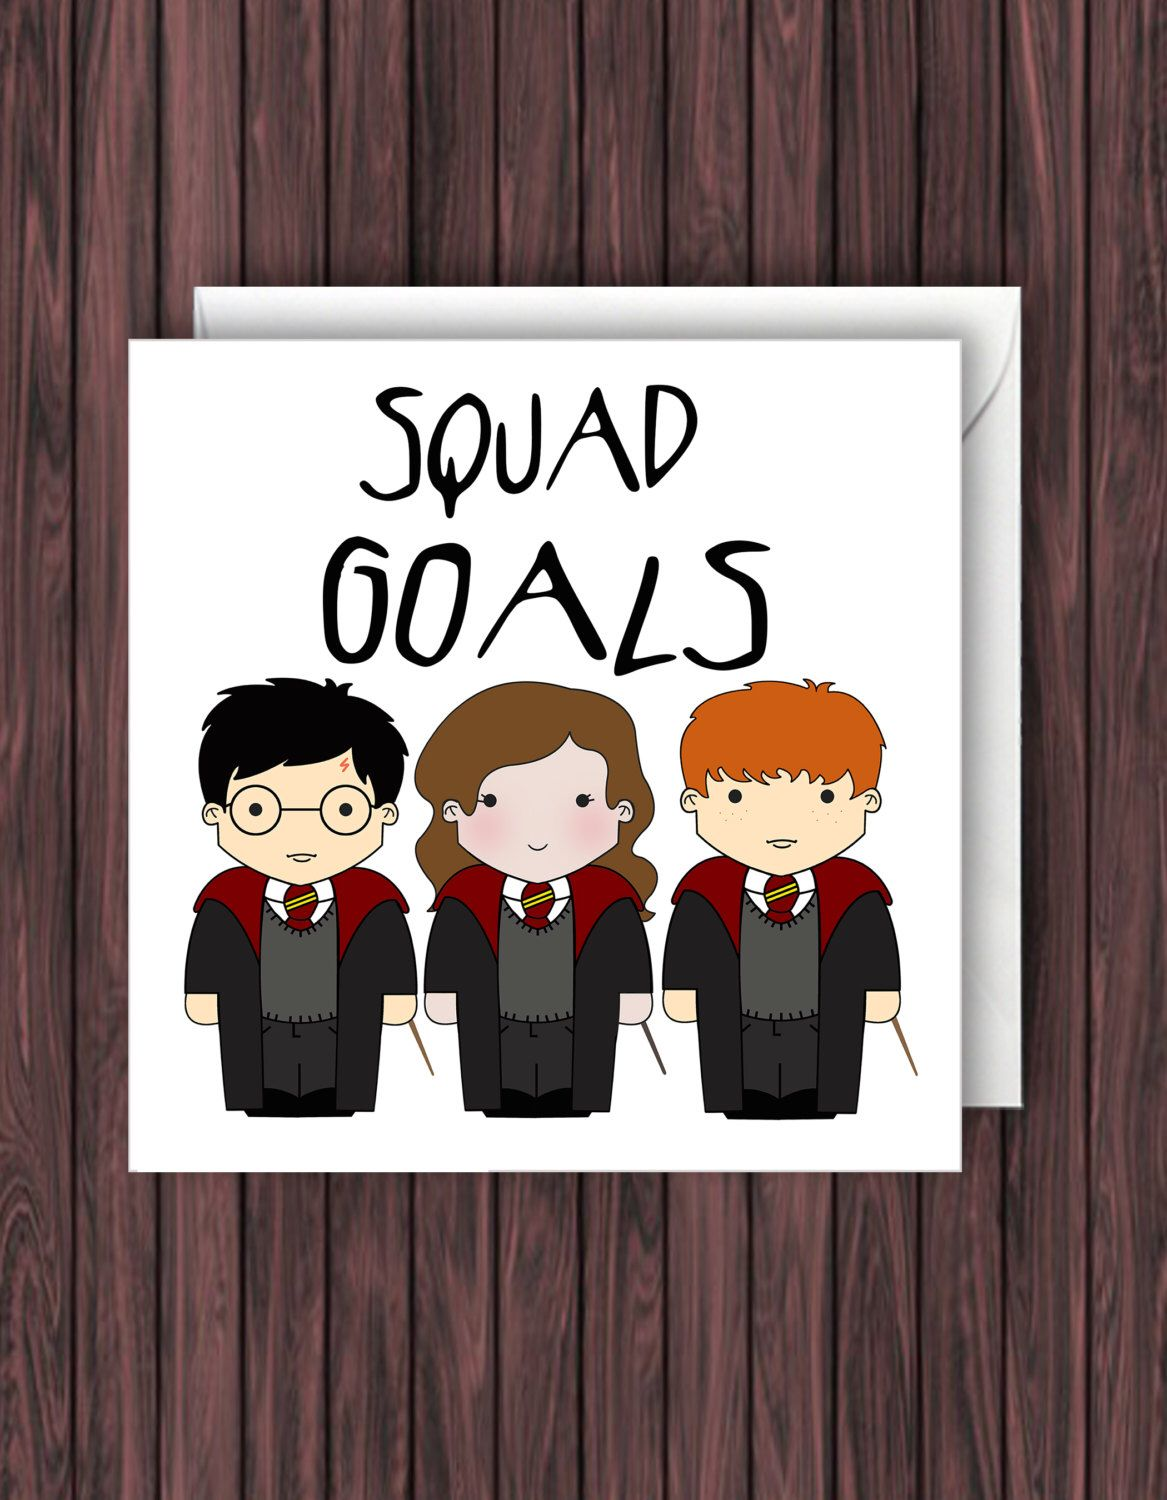 Squad Goals Harry Potter Birthday Card Geek Blank Card Funny